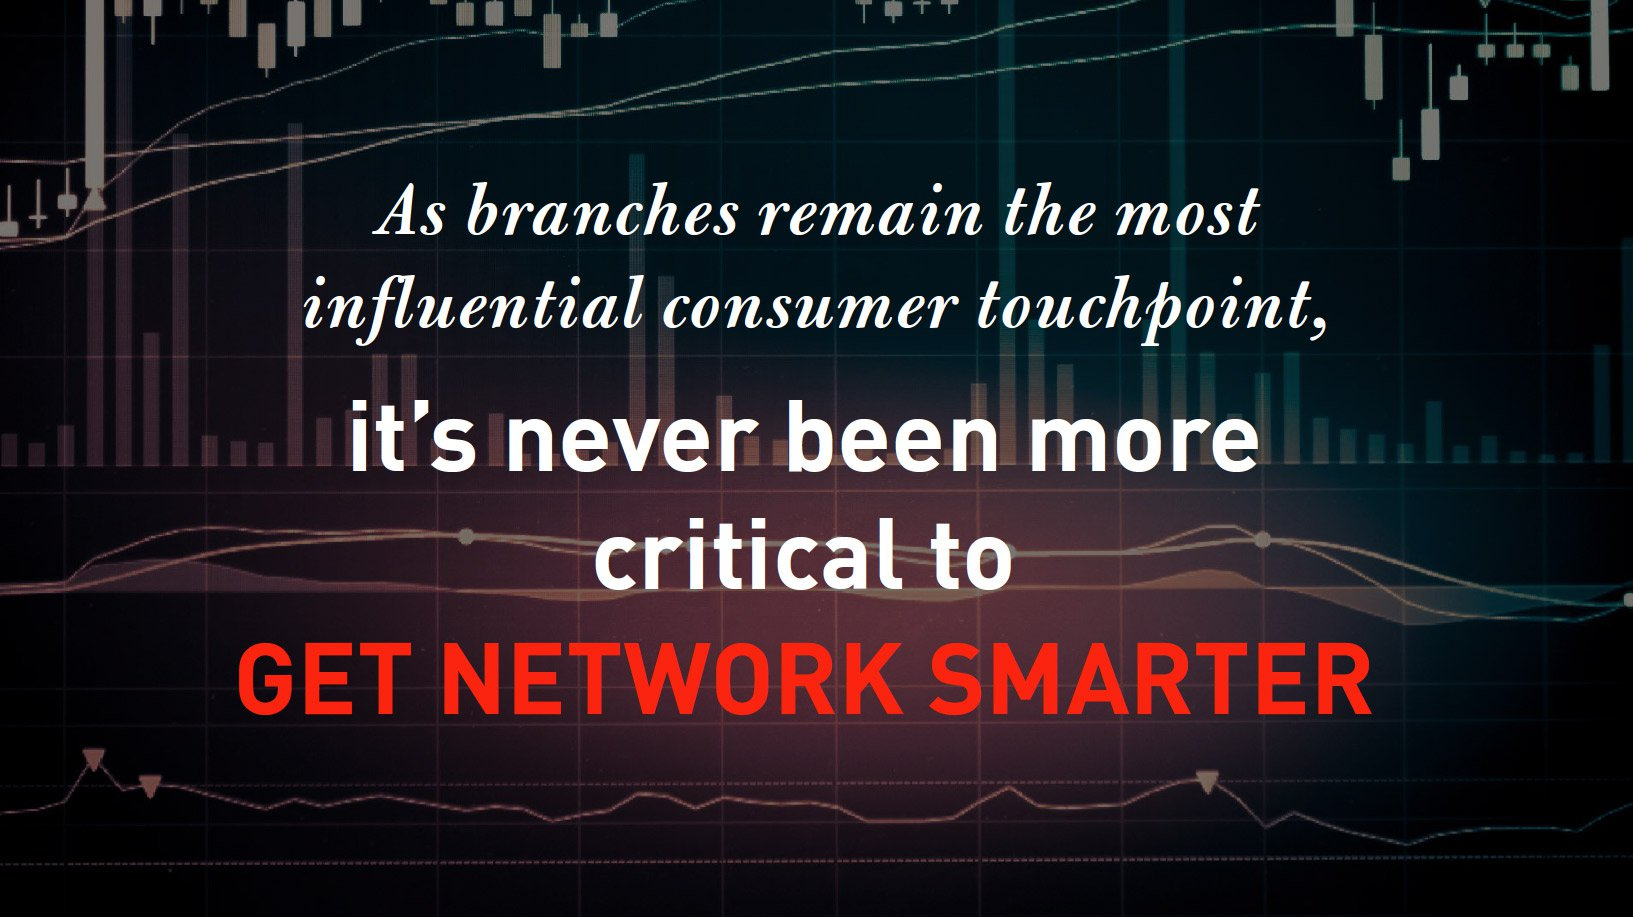 Getting Branch Network Smarter